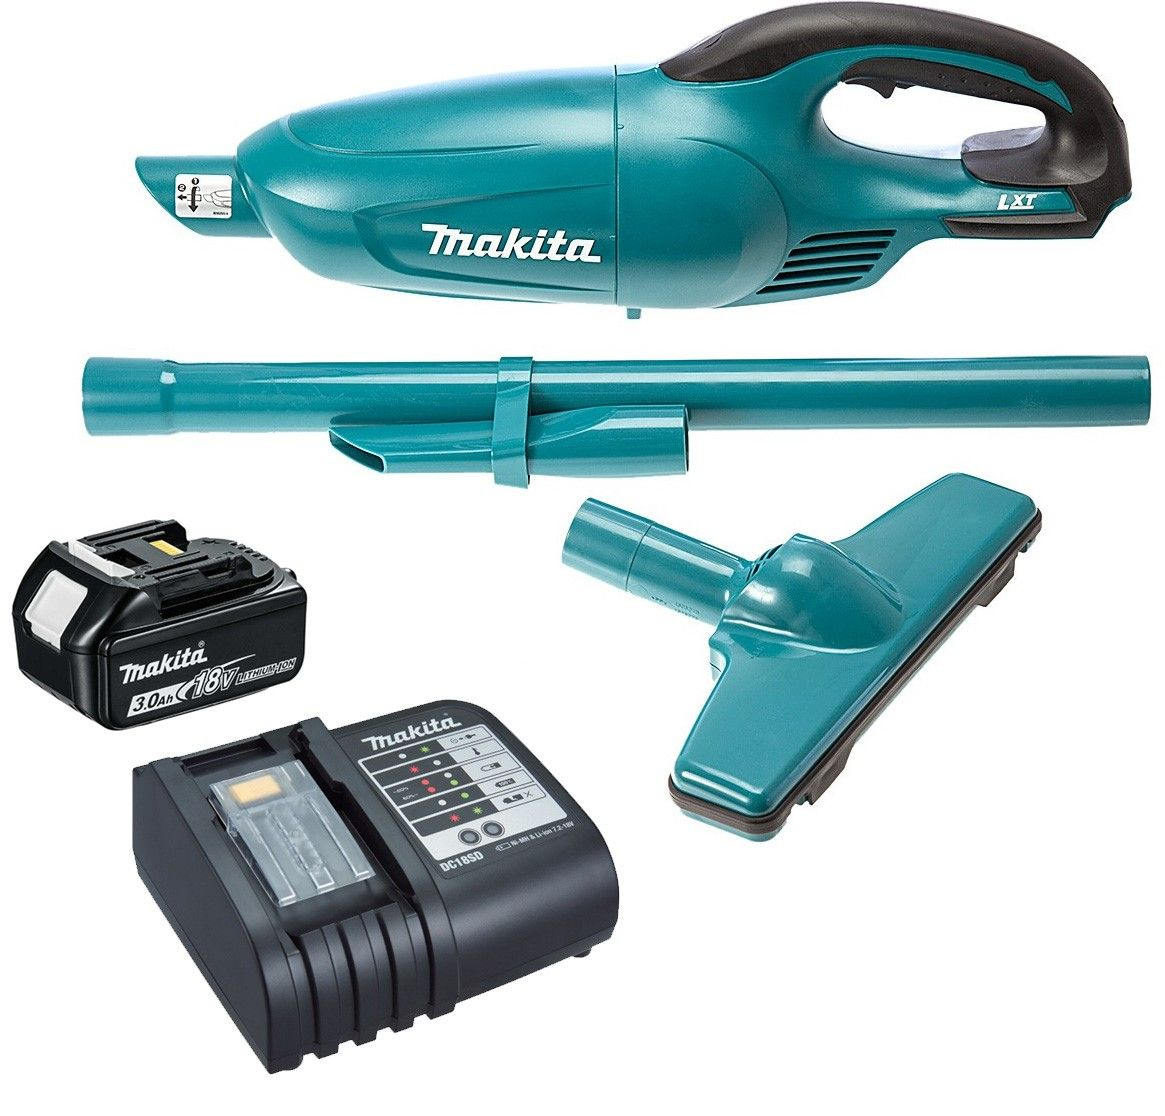 Makita DCL180Z Cordless 18V Li-ion Vacuum Cleaner Body with 1 x 3.0Ah Battery